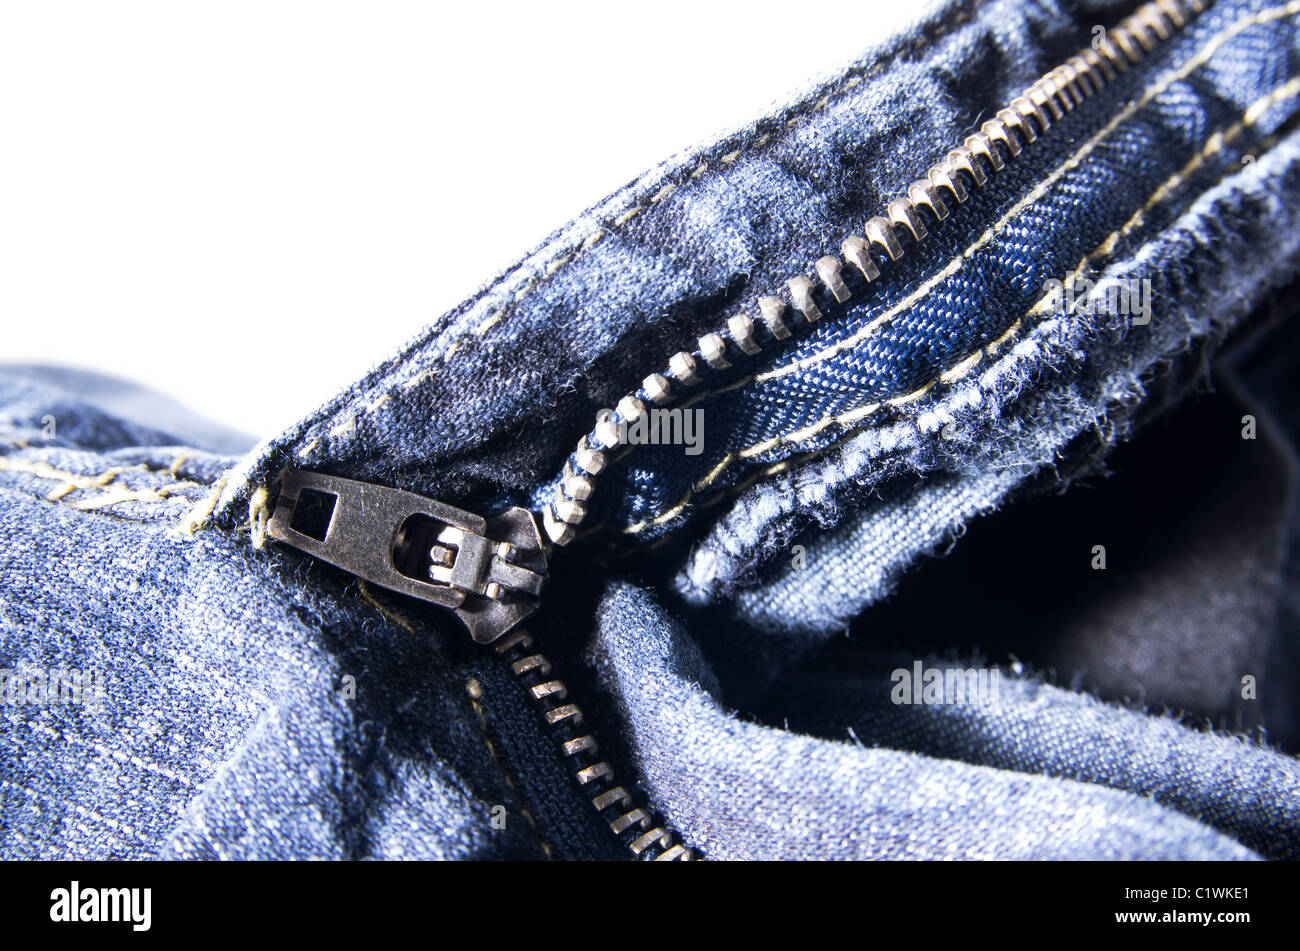 A close up of a zipper on a pair of jeans. - Stock Image